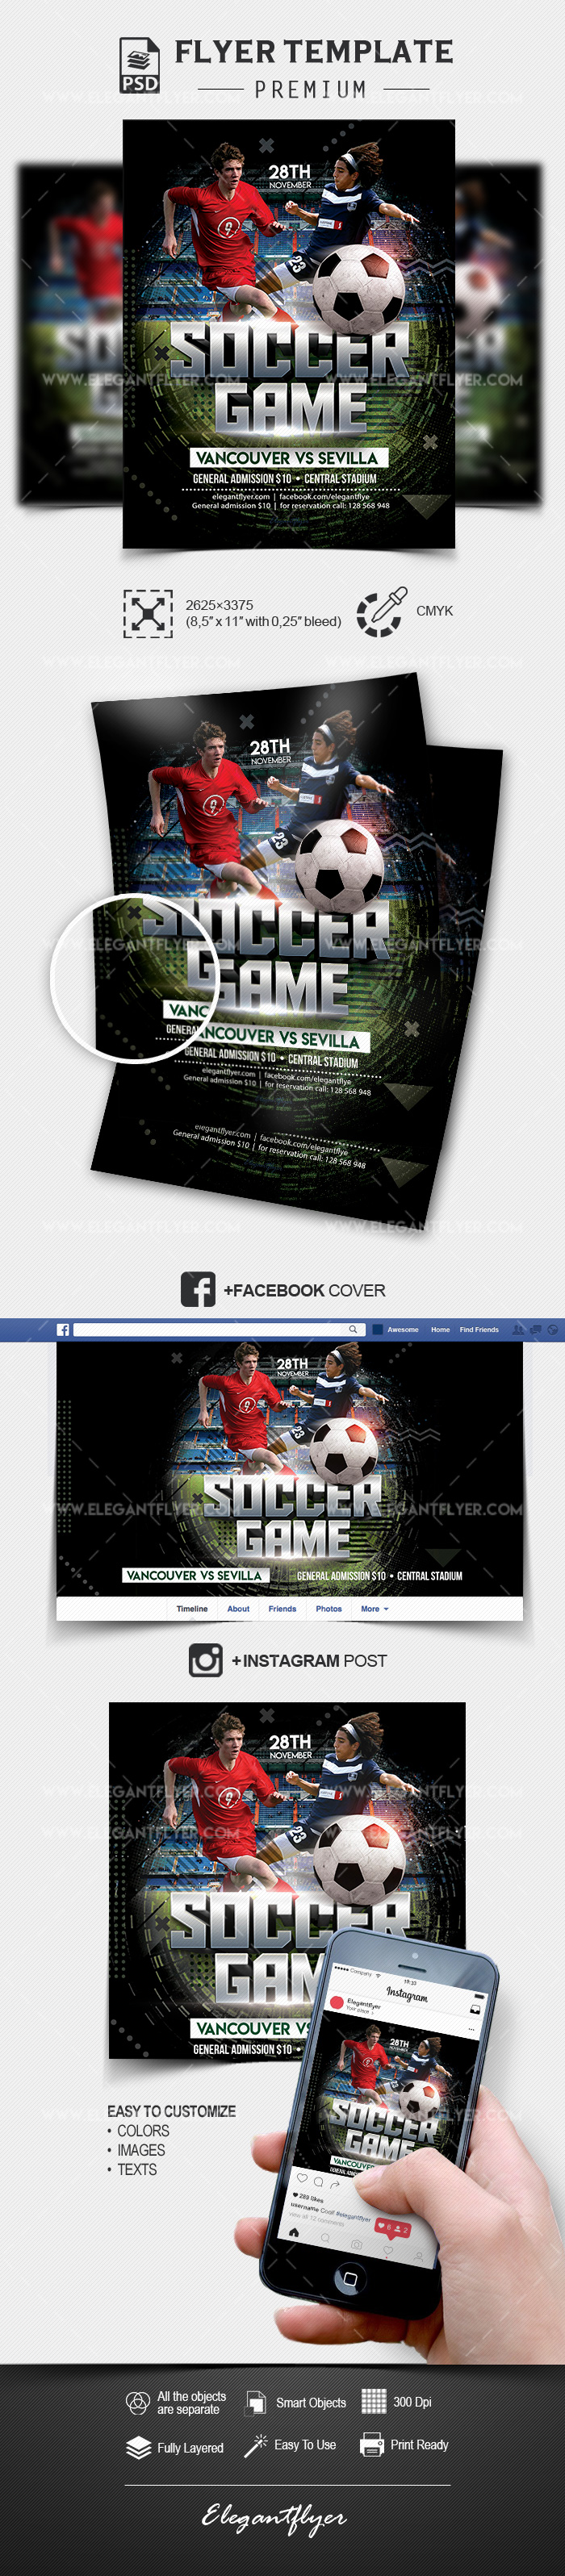 Soccer Game – PSD Flyer Template + Facebook Cover + Instagram Post